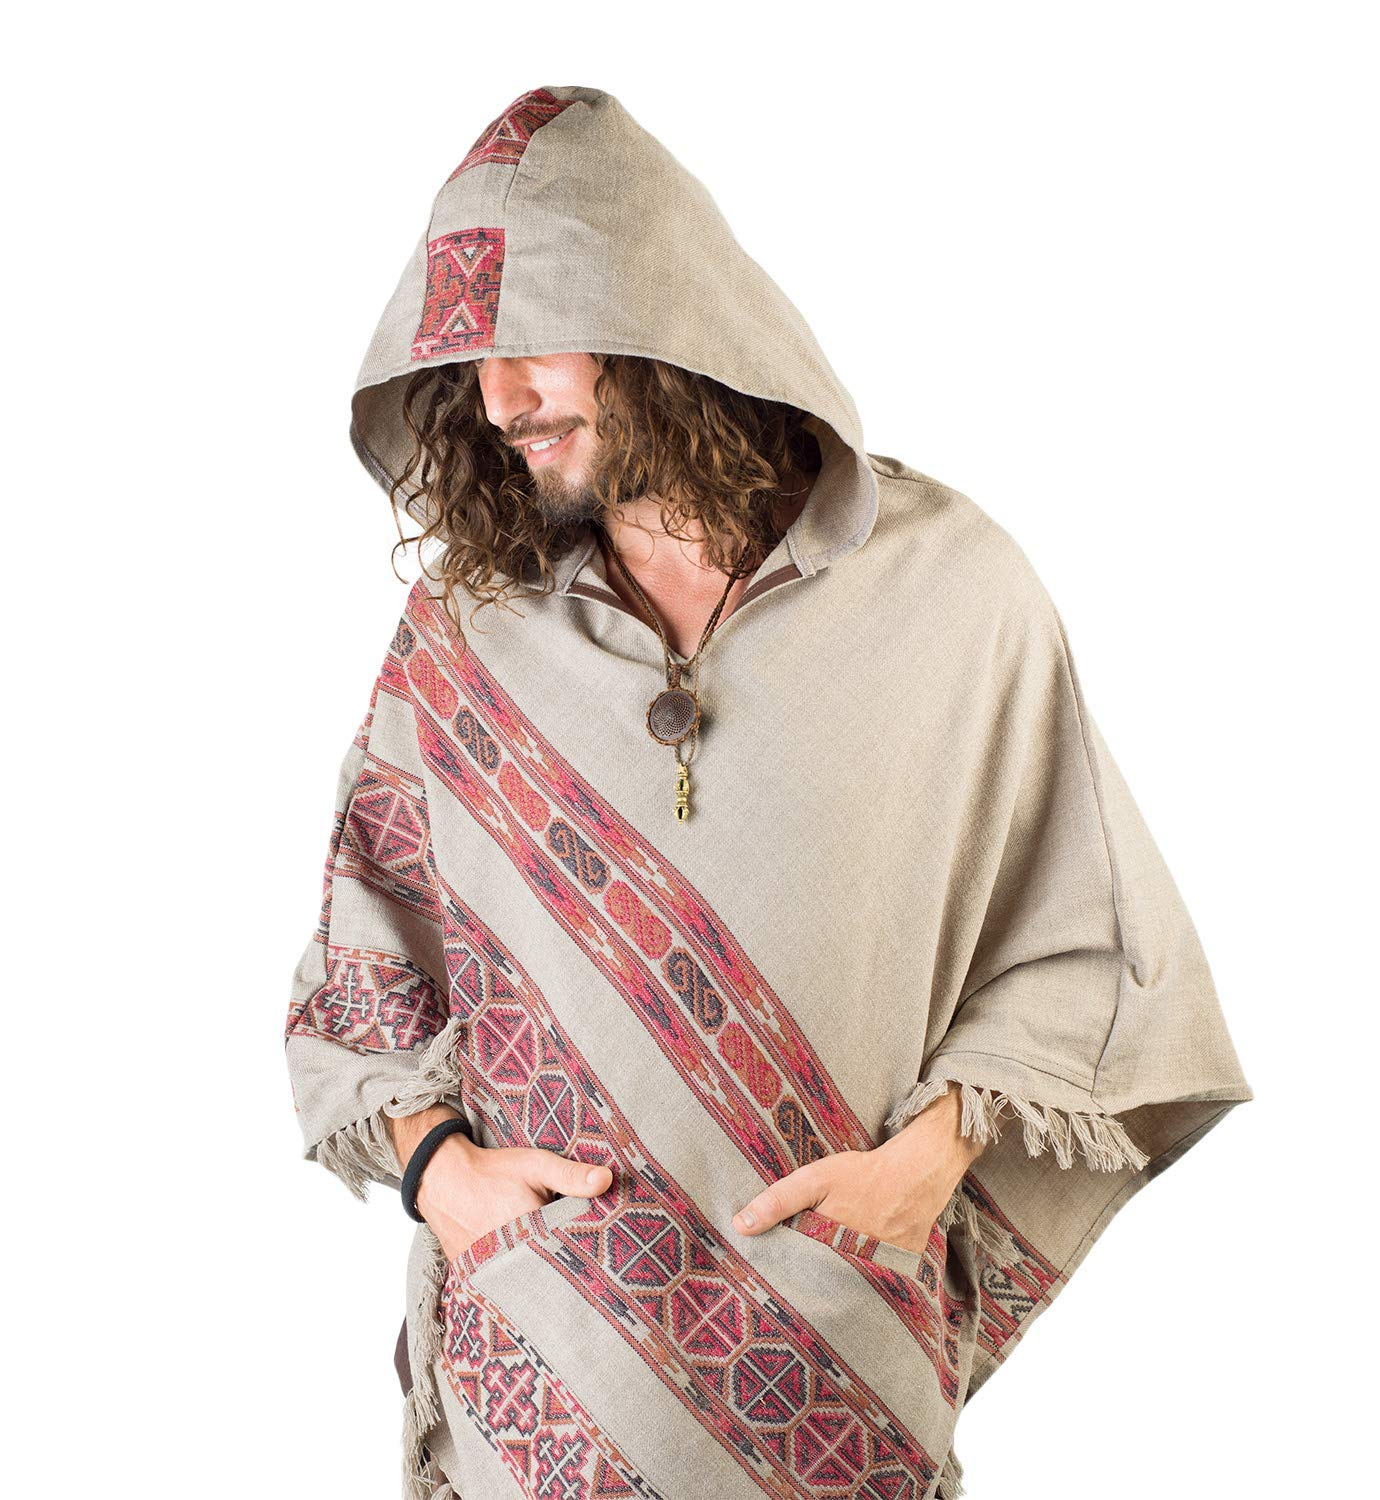 Handmade Hooded Mens Poncho Light Grey Cashmere Wool with Large Hood and Pockets Jungle Primitive Gypsy Festival Mexican Tribal Embroidered Celtic Earthy Winter Tibetan AJJAYA Wild /…